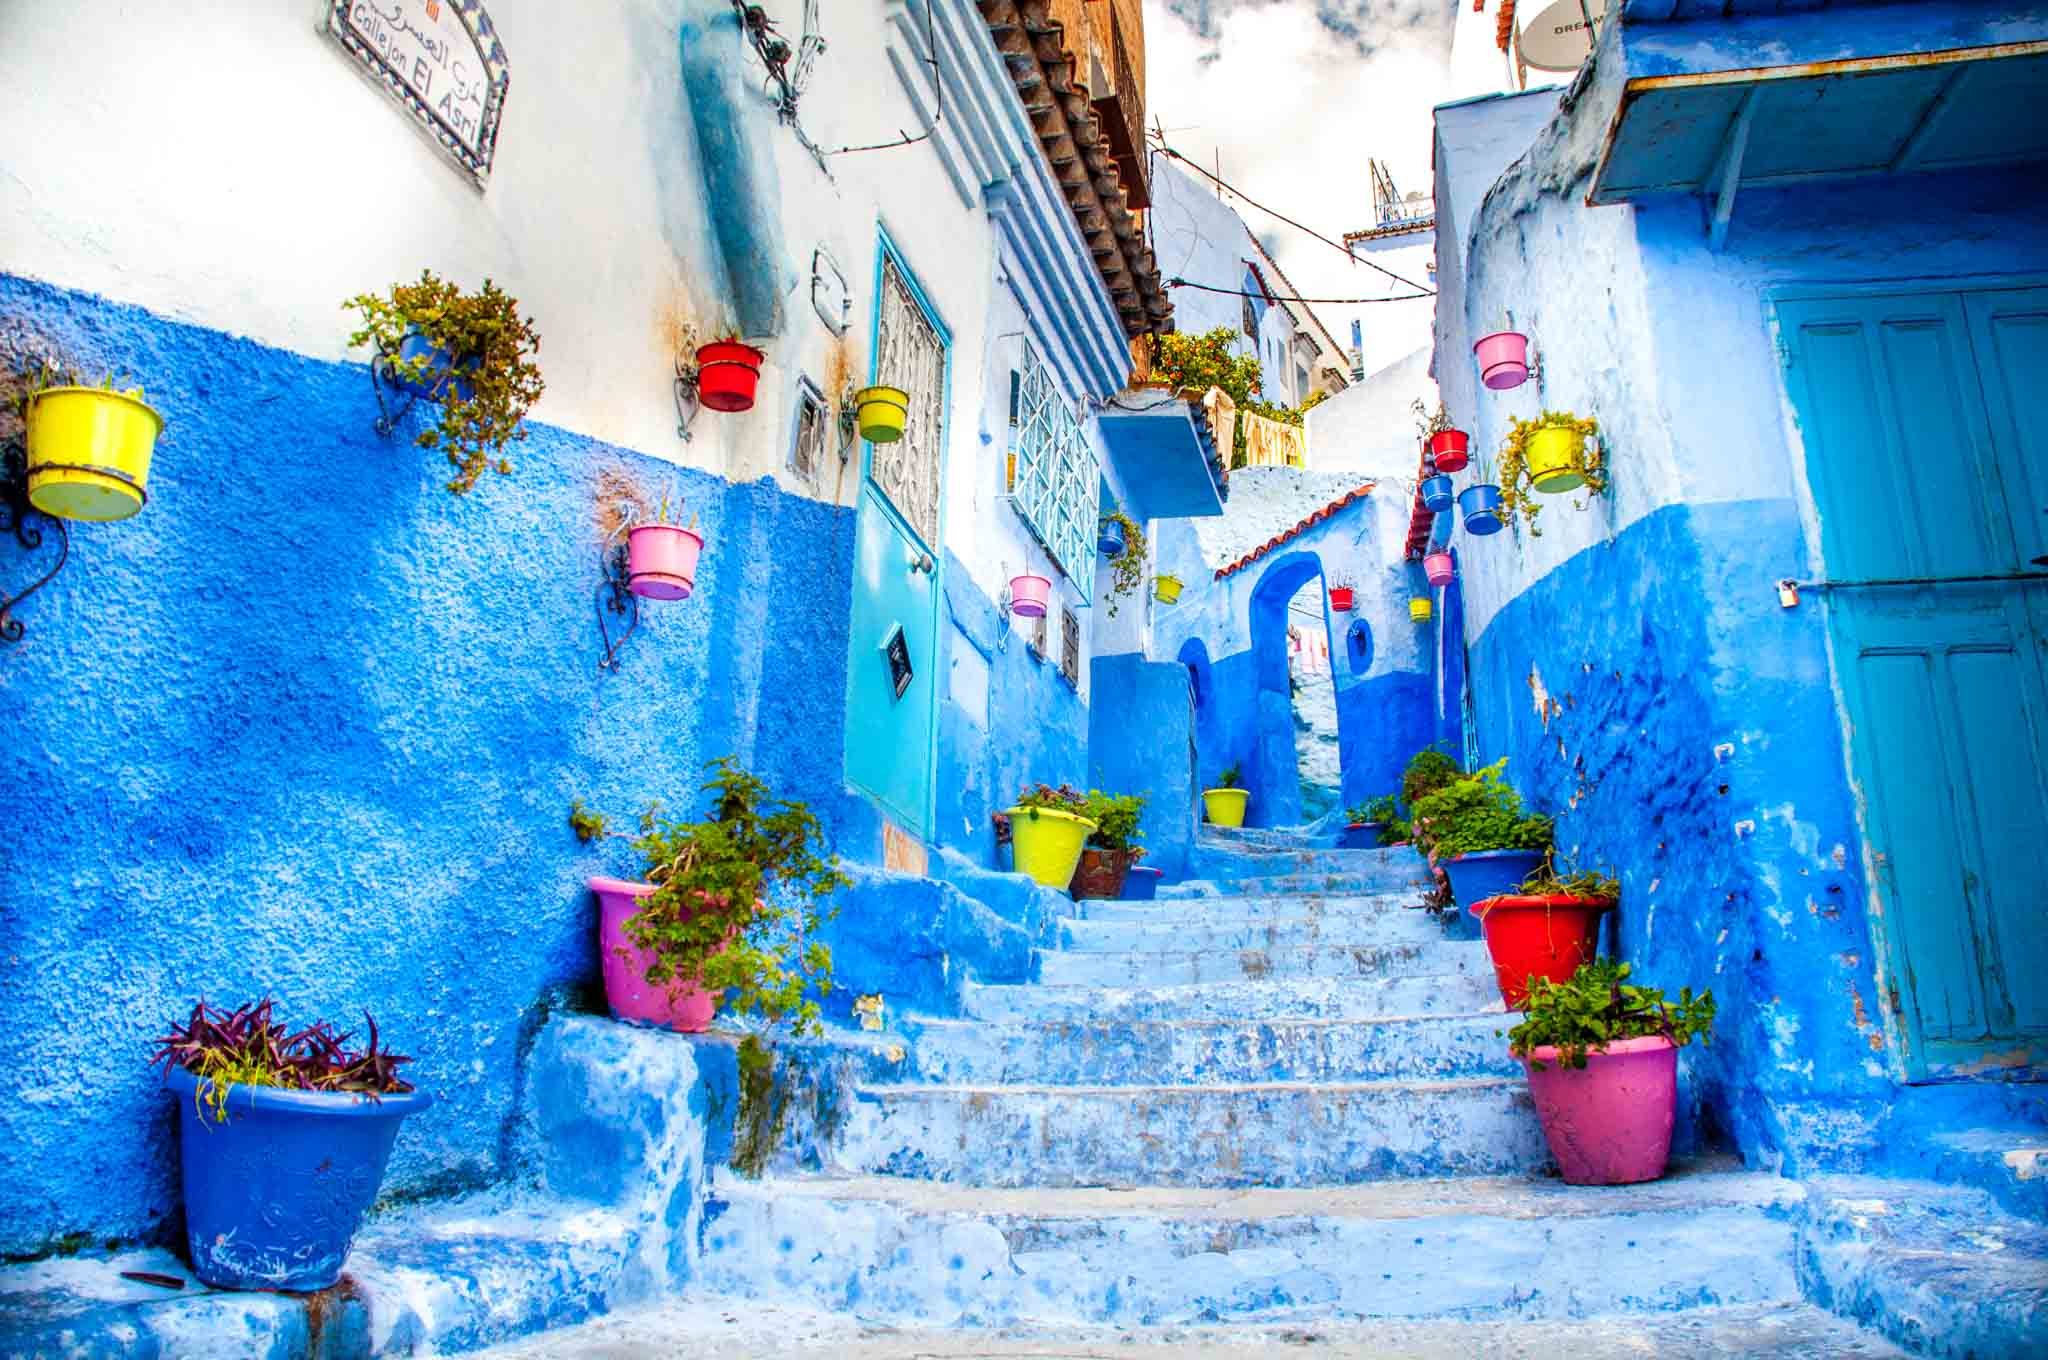 Blue staircase lined with colorful pots in Chefchaouen Morocco